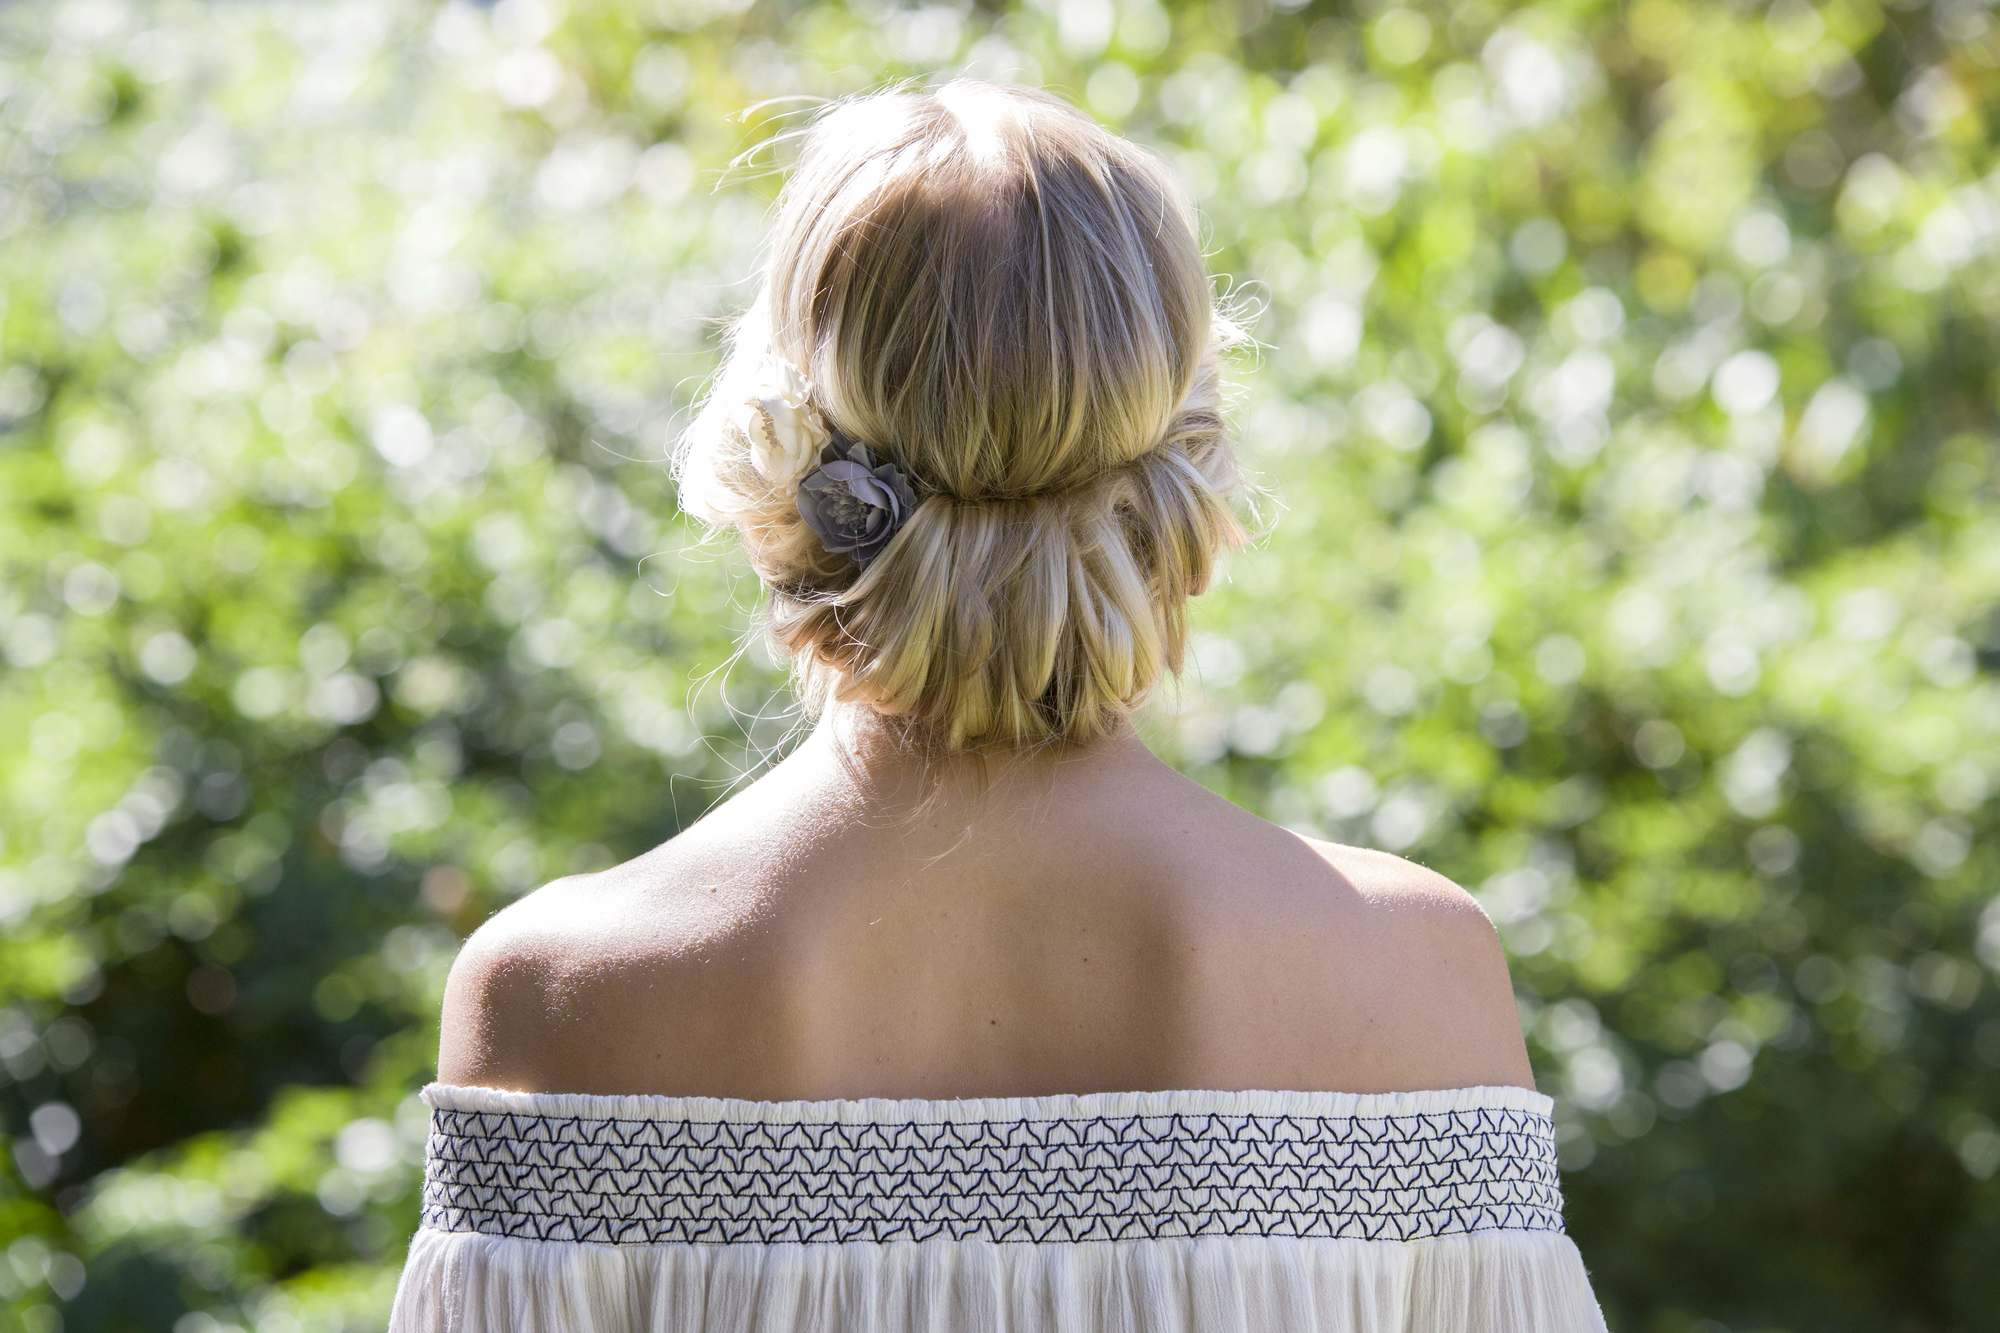 ash blonde: back of a woman's head with blonde hair twisted up into a tuck hairstyle, wearing low-cut bardot top and posing outside